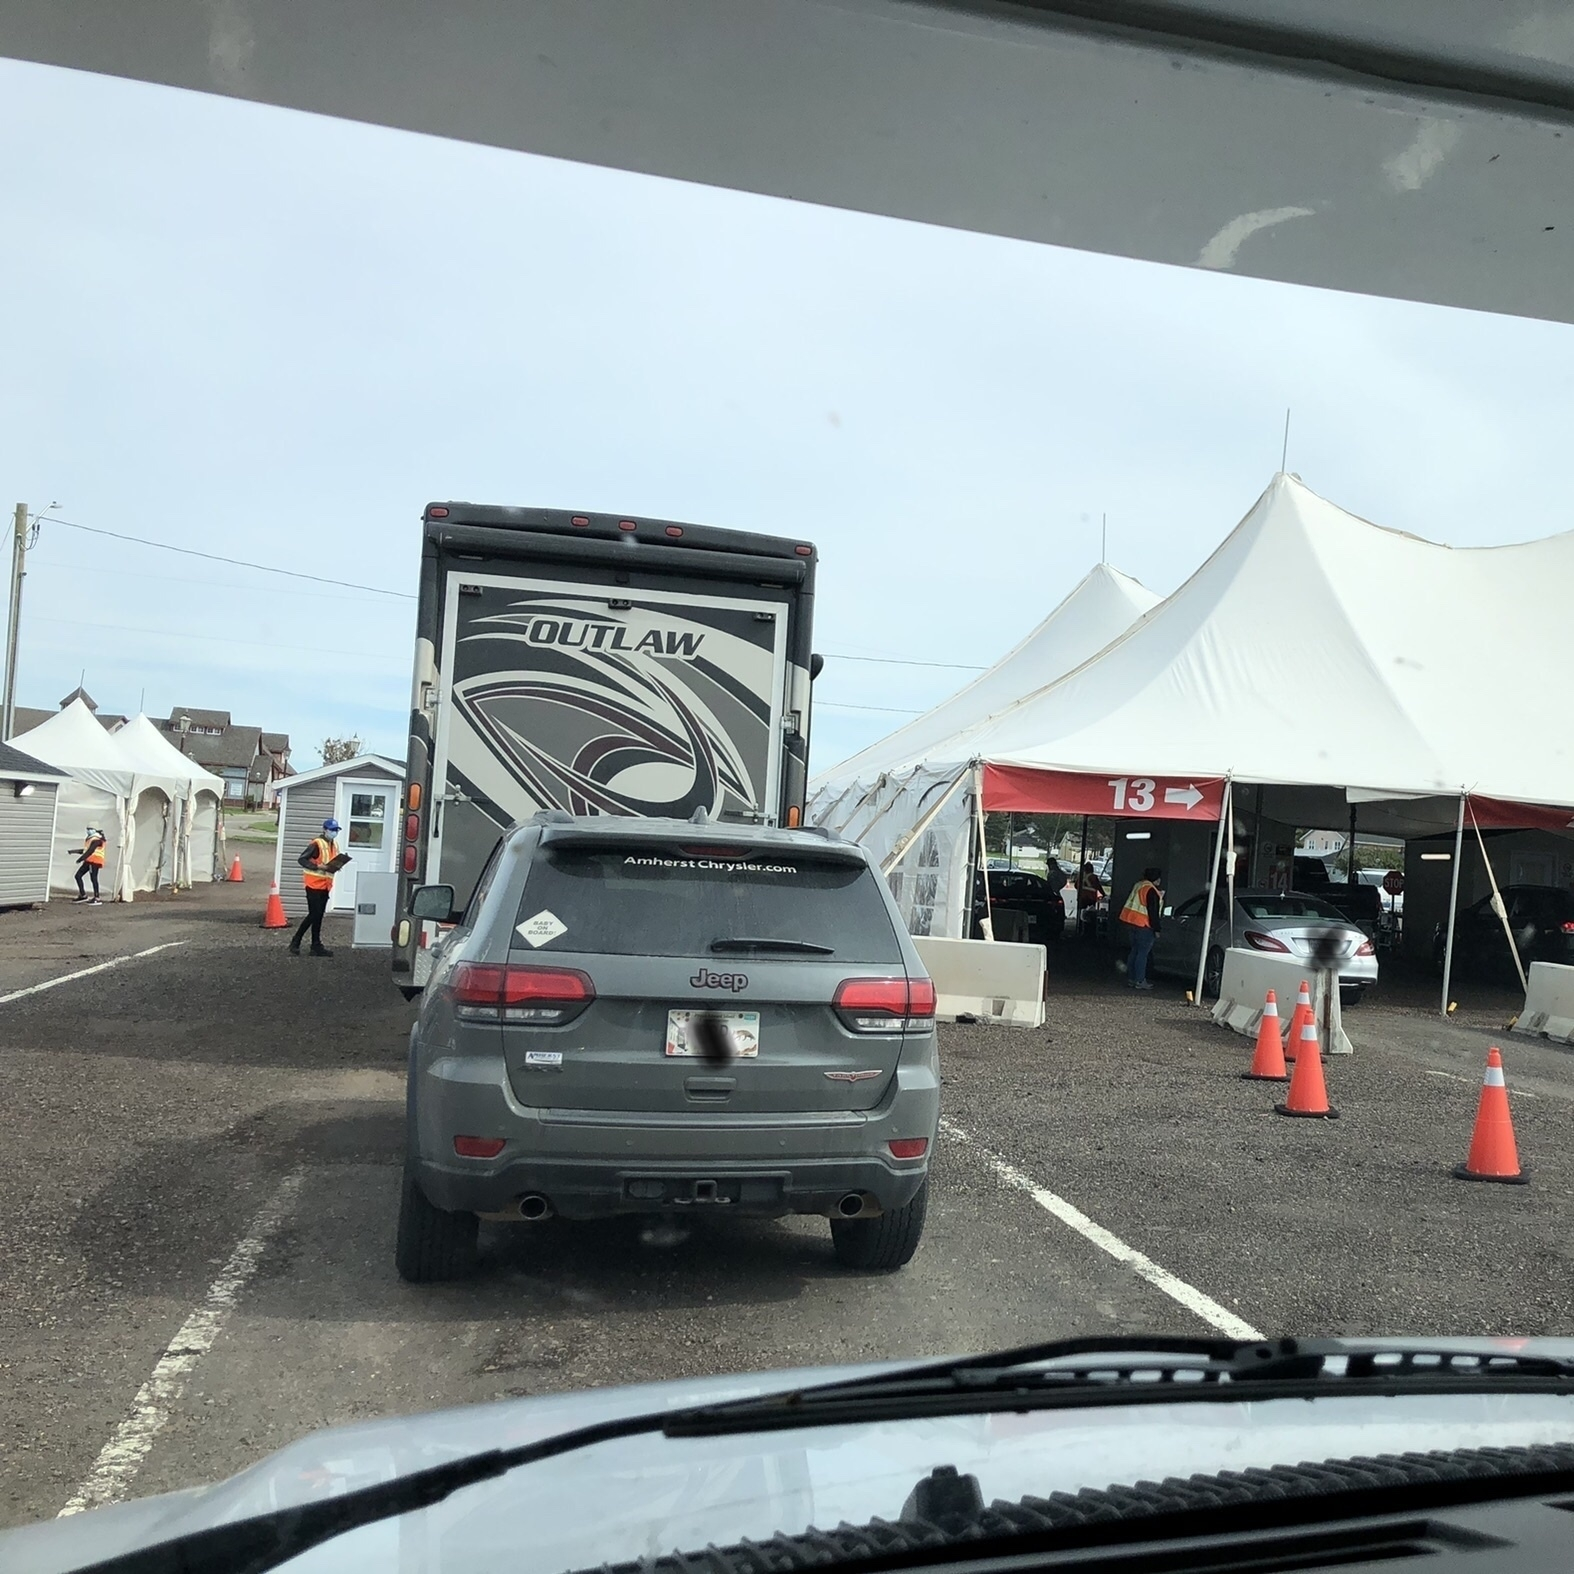 motor home pulling a car. large tents with automobiles entering. concrete barriers